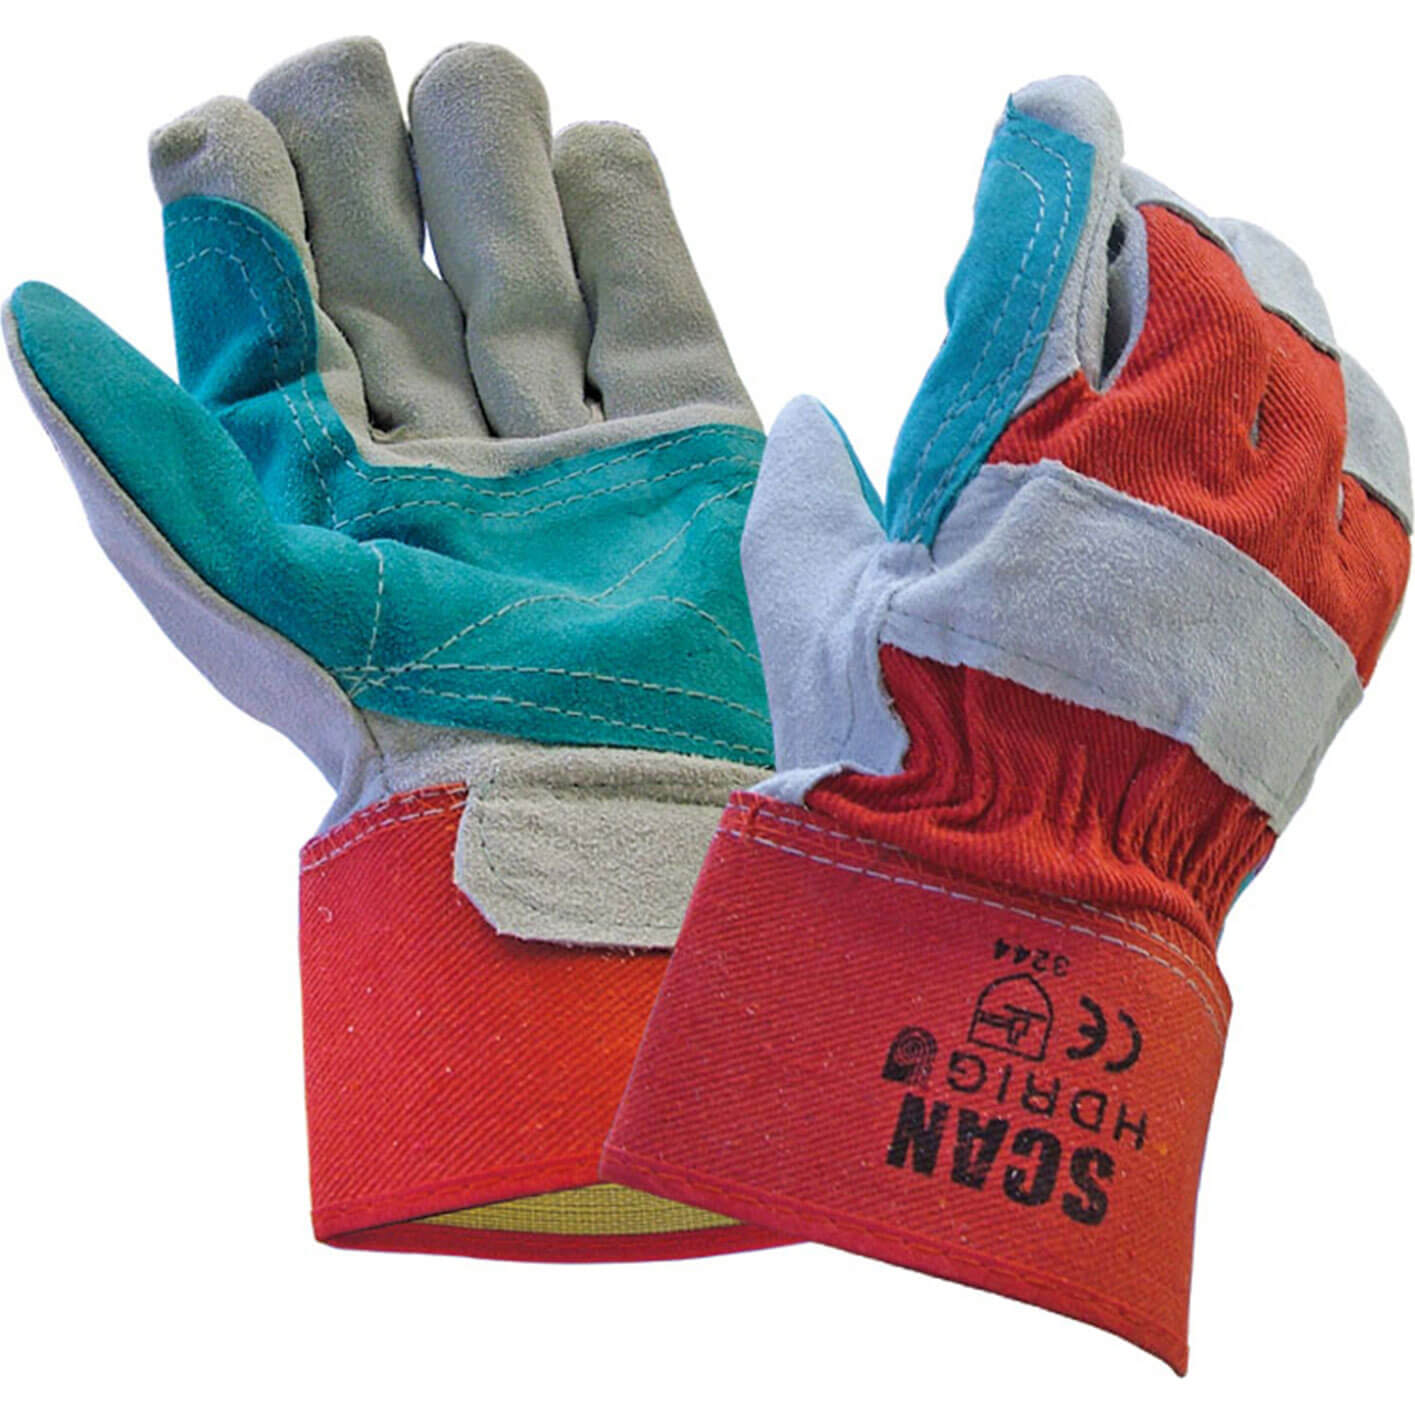 Image of Scan Heavy Duty Rigger Gloves One Size